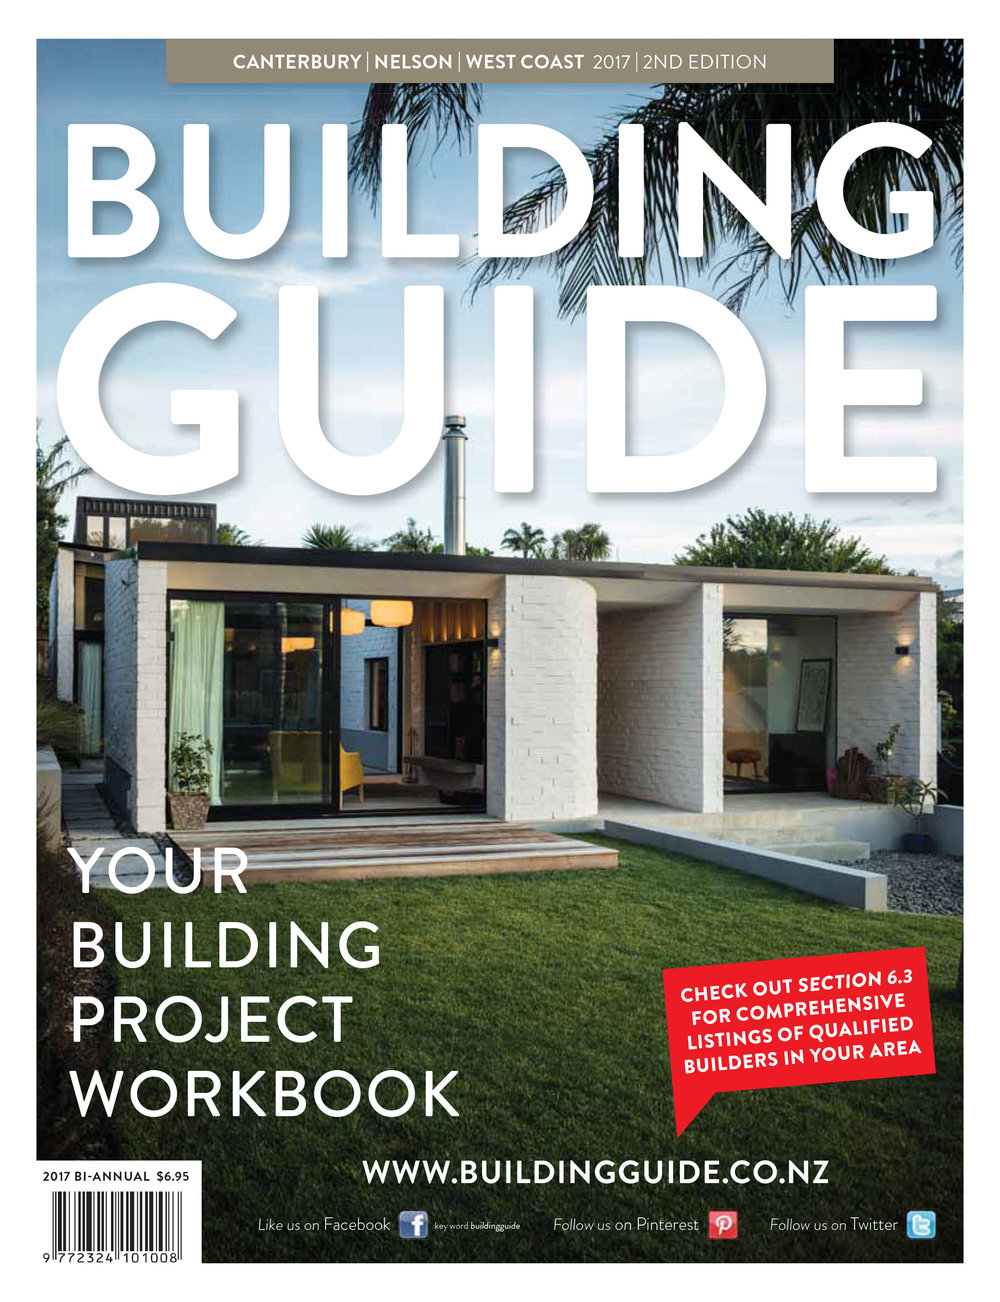 Canterbury-Nelson-West-Coast-Building-Guide2017-1.jpg